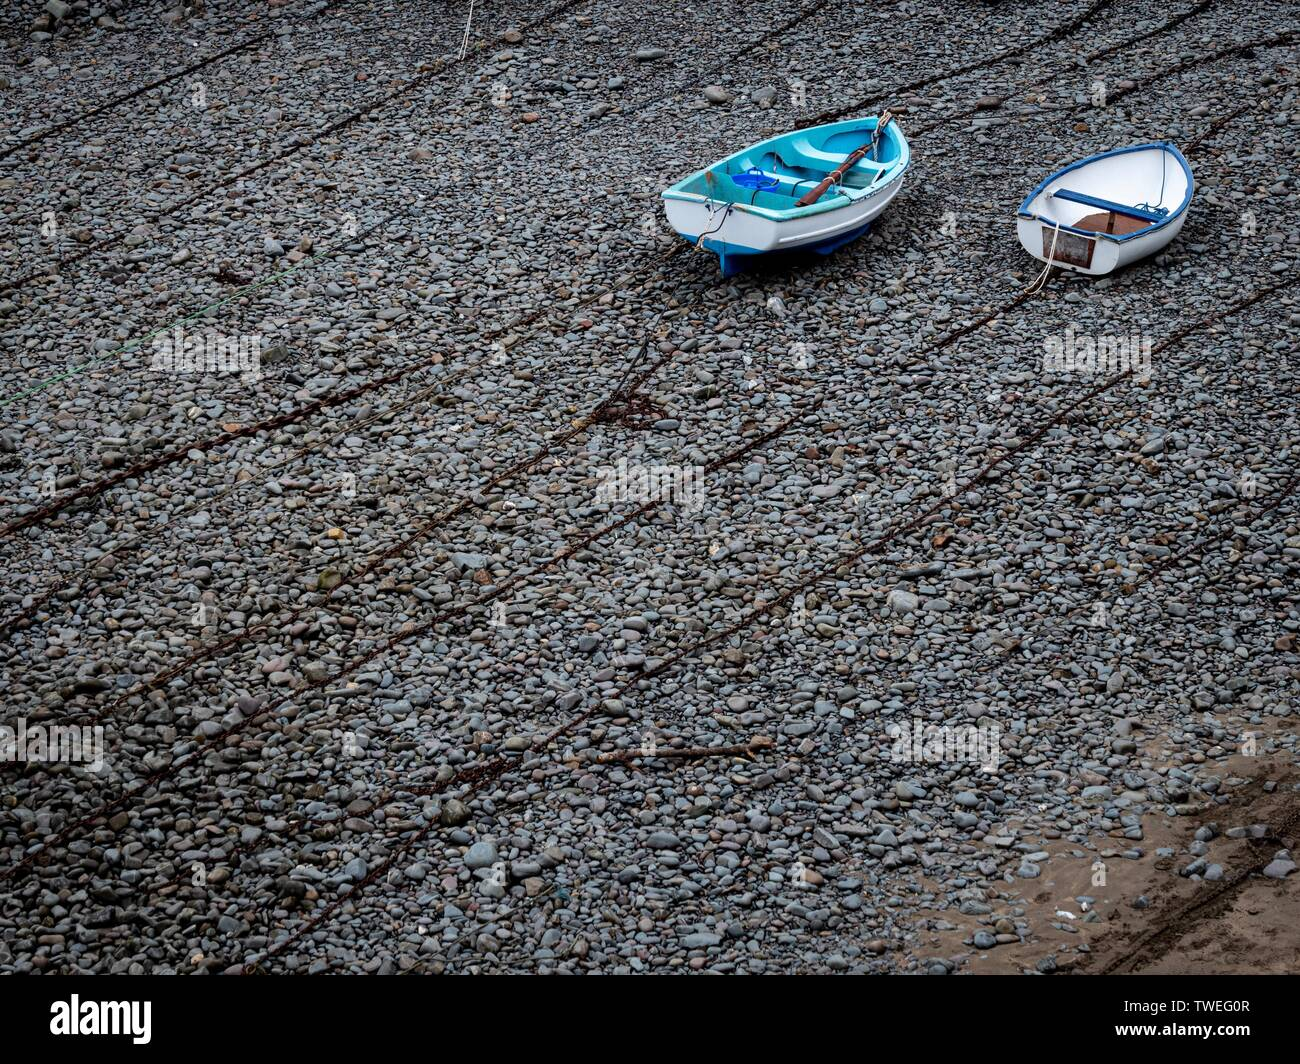 Two rowing boats lying on top of chains on a pebble beach - Stock Image